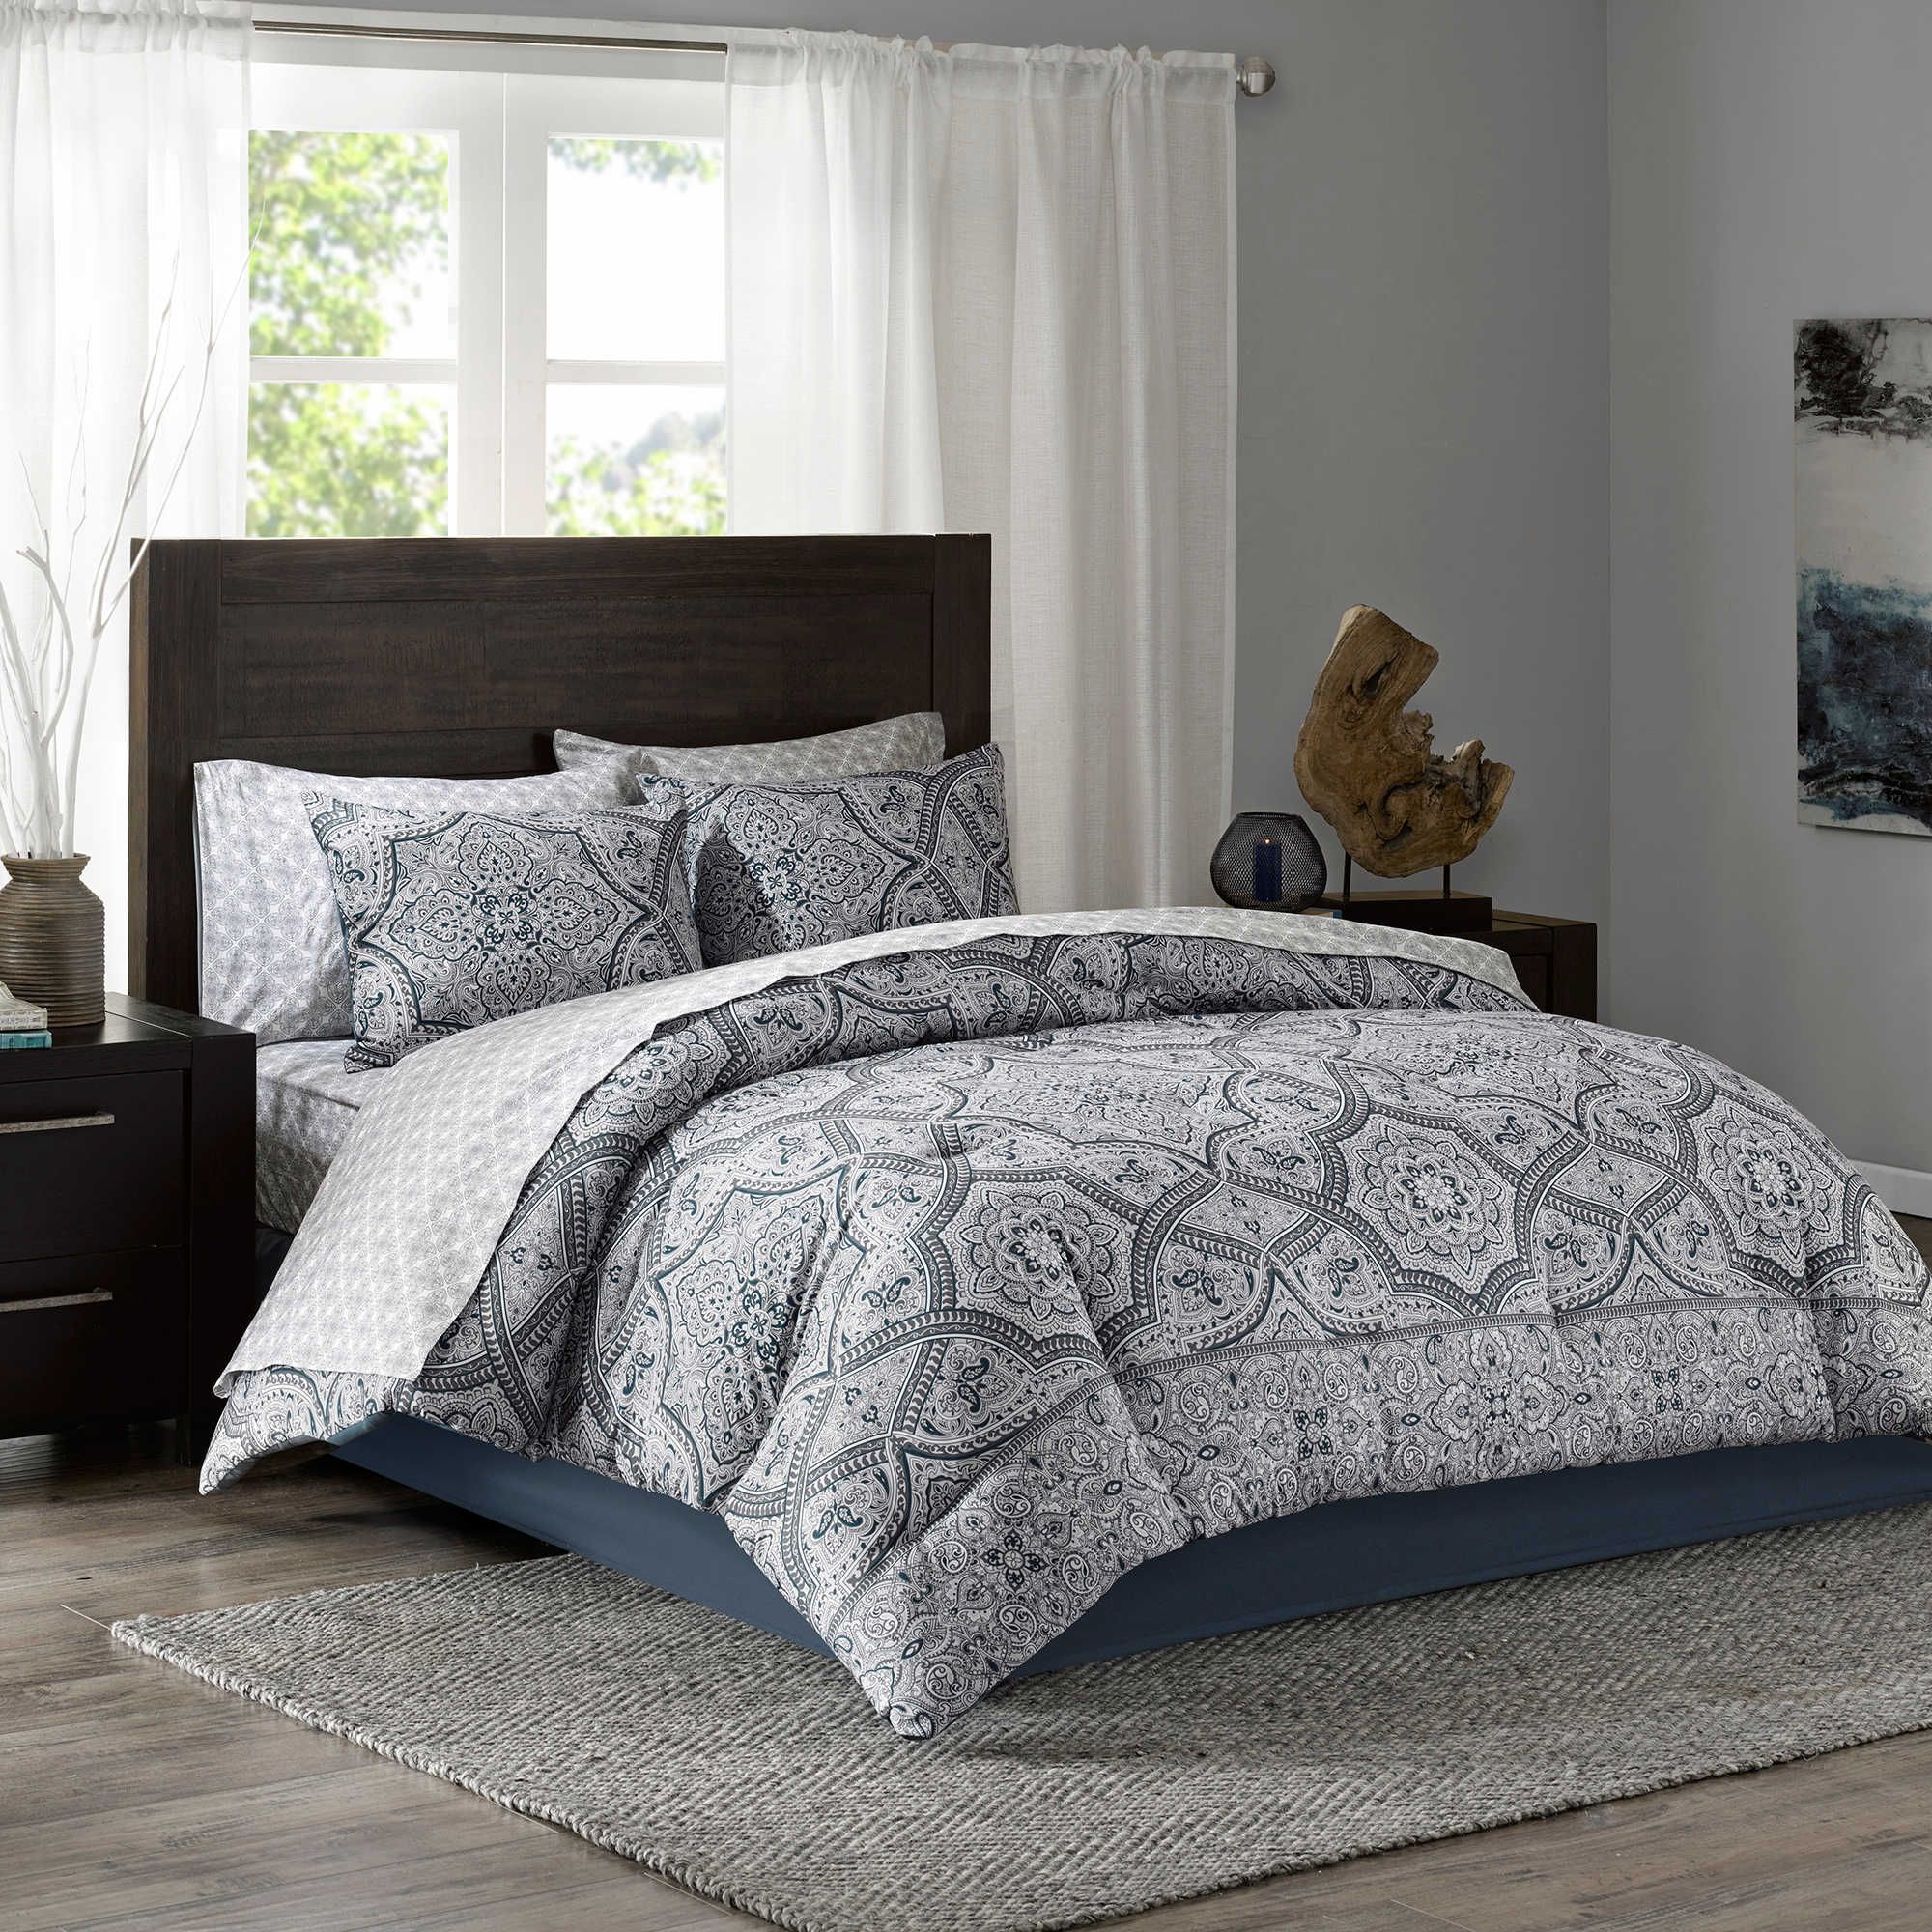 Tanami forter Set in Blue Grey Bedding Ideas Pinterest